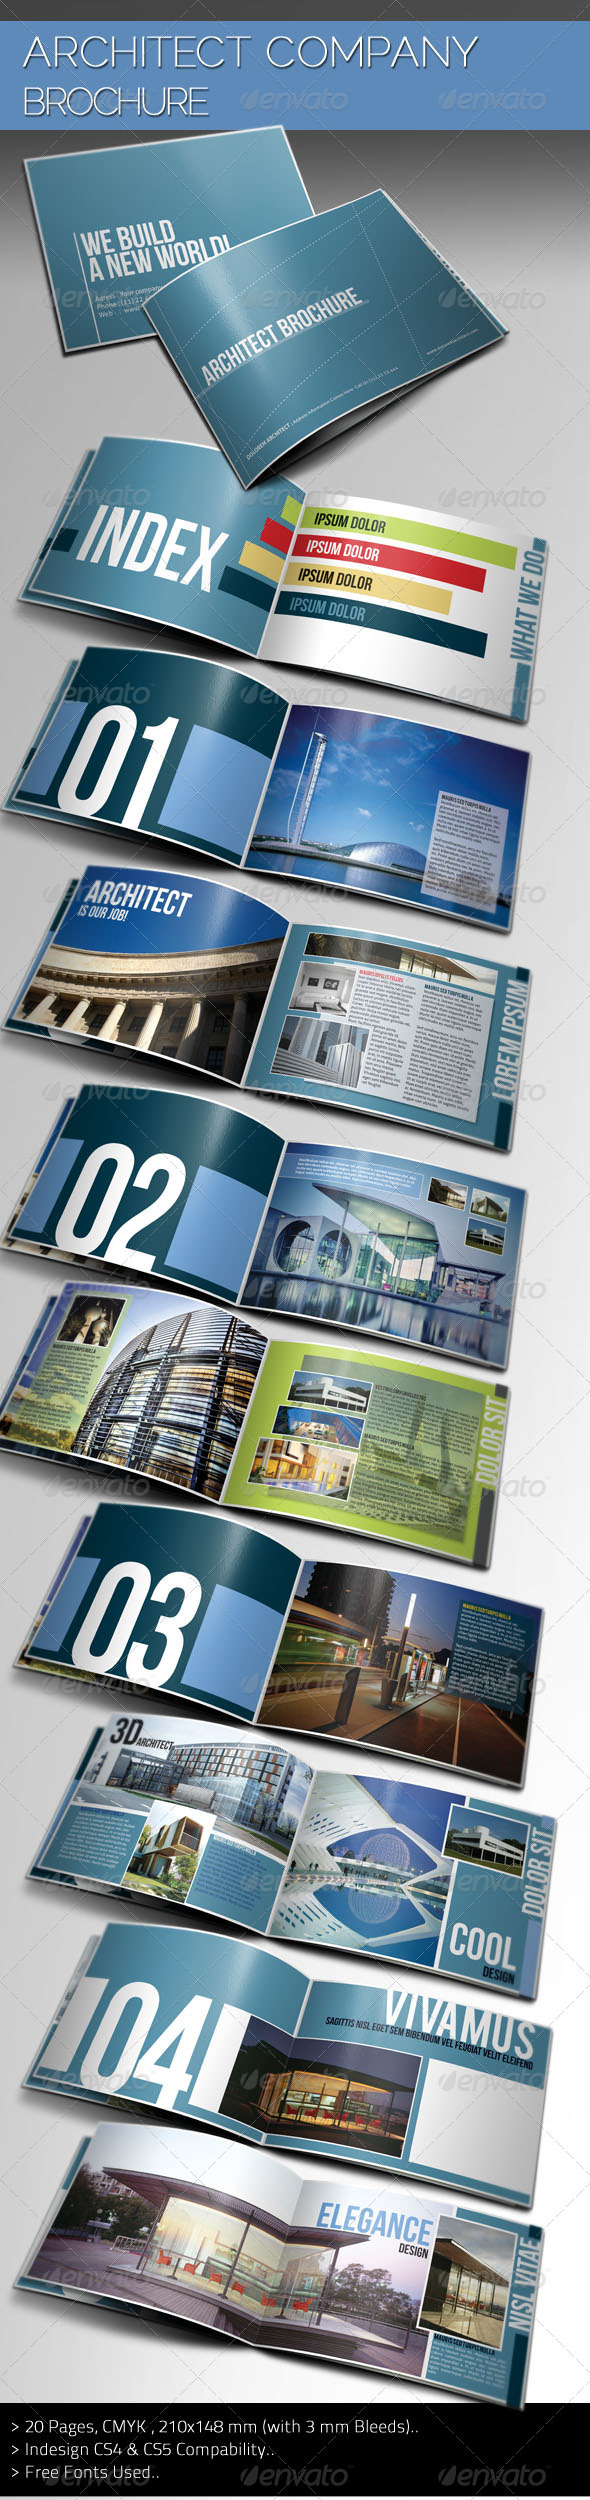 Architecture portfolio brochure design for Indesign interior